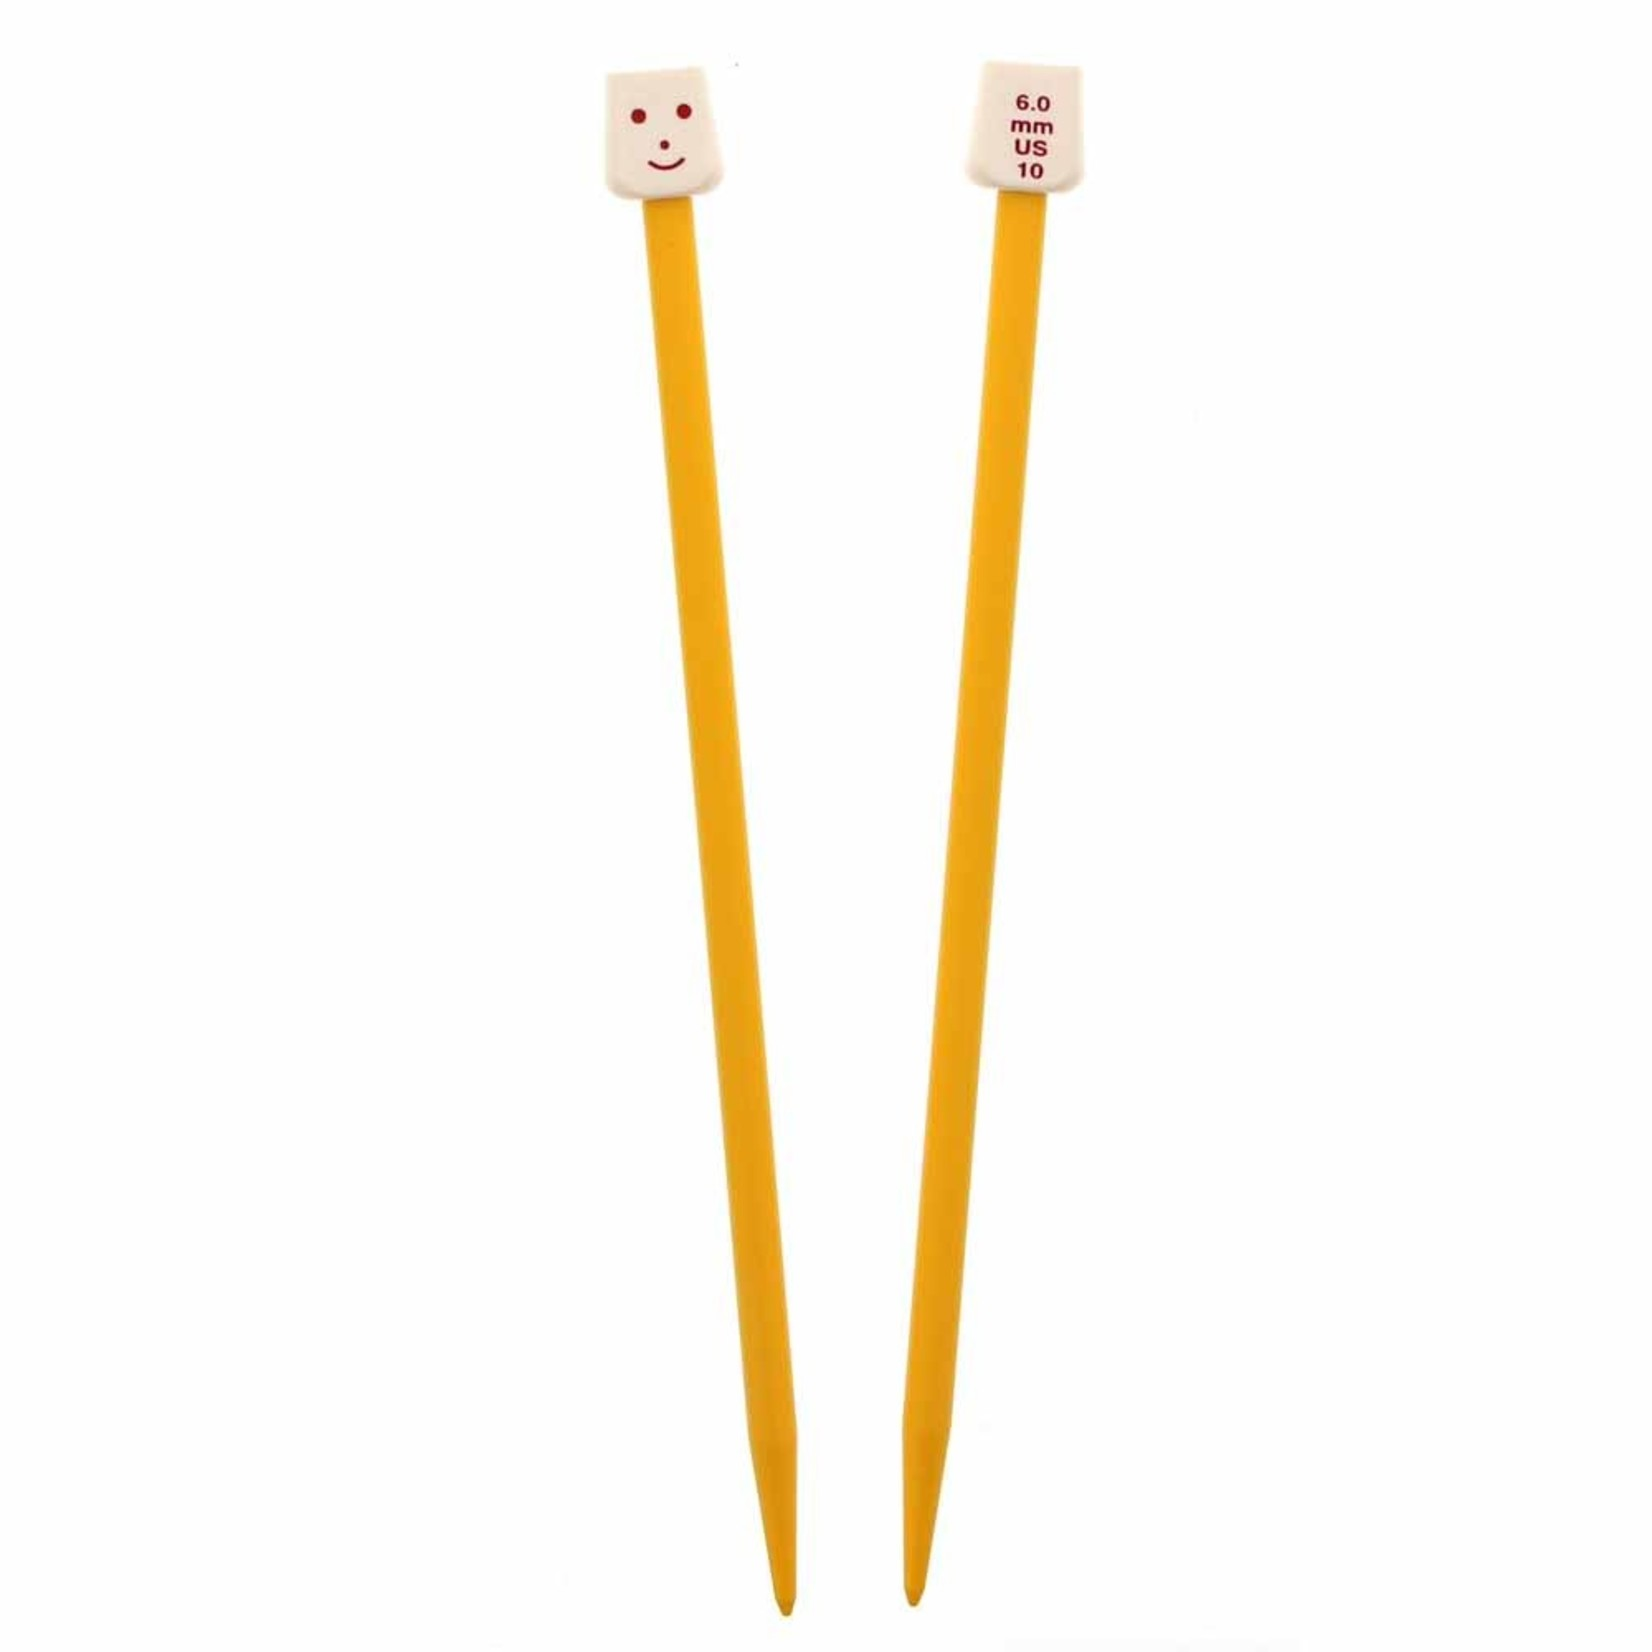 Knitting Essentials Knitting Needles for Kids by Knitting Essentials